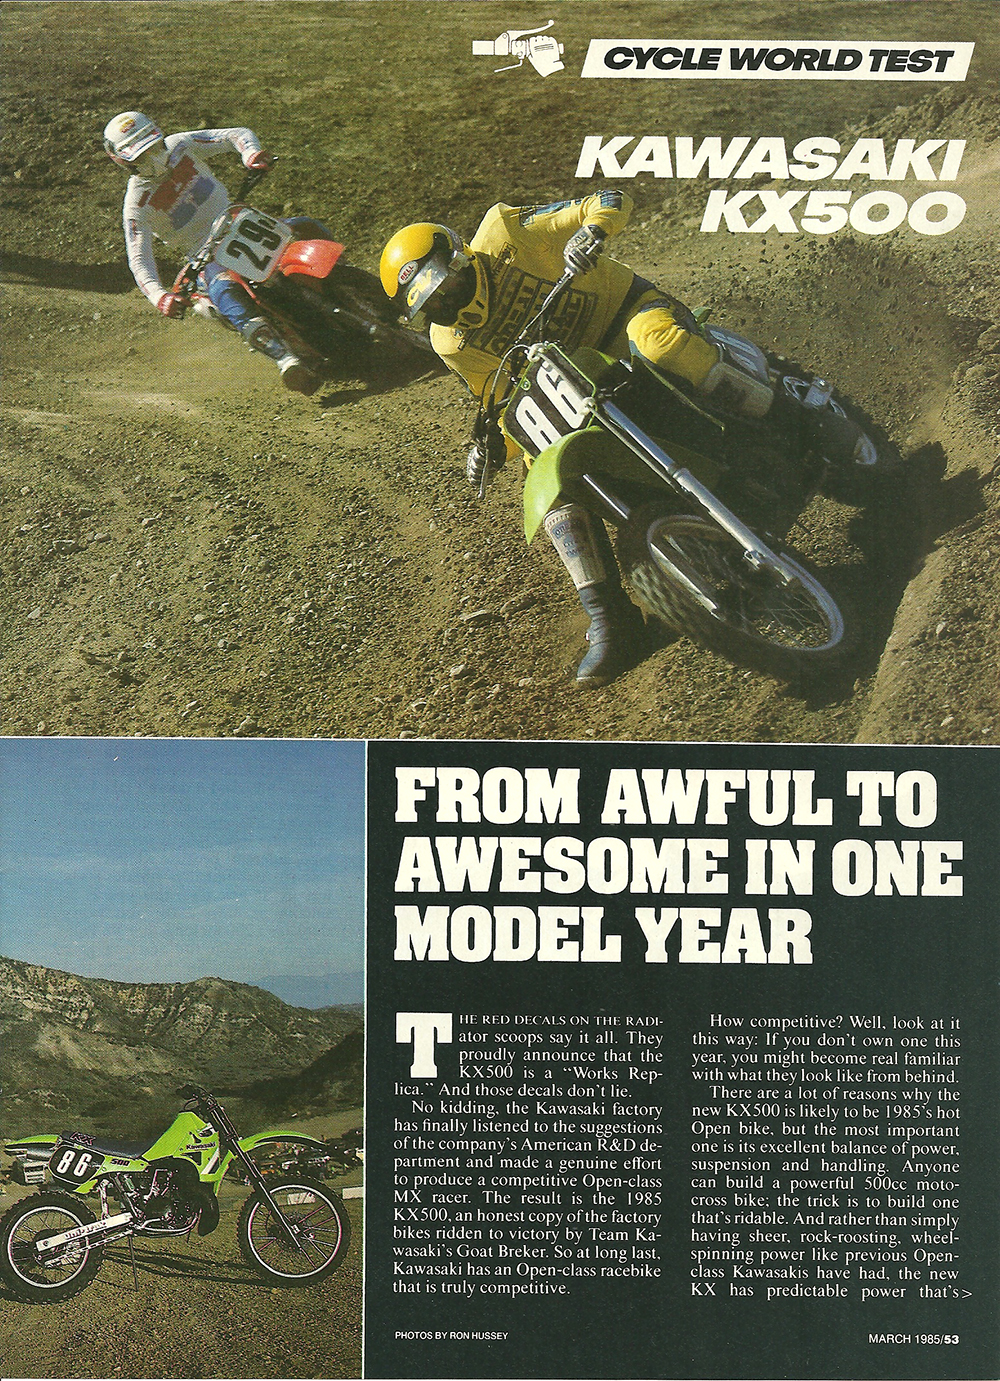 1985 Kawasaki KX500 road test 02.jpg